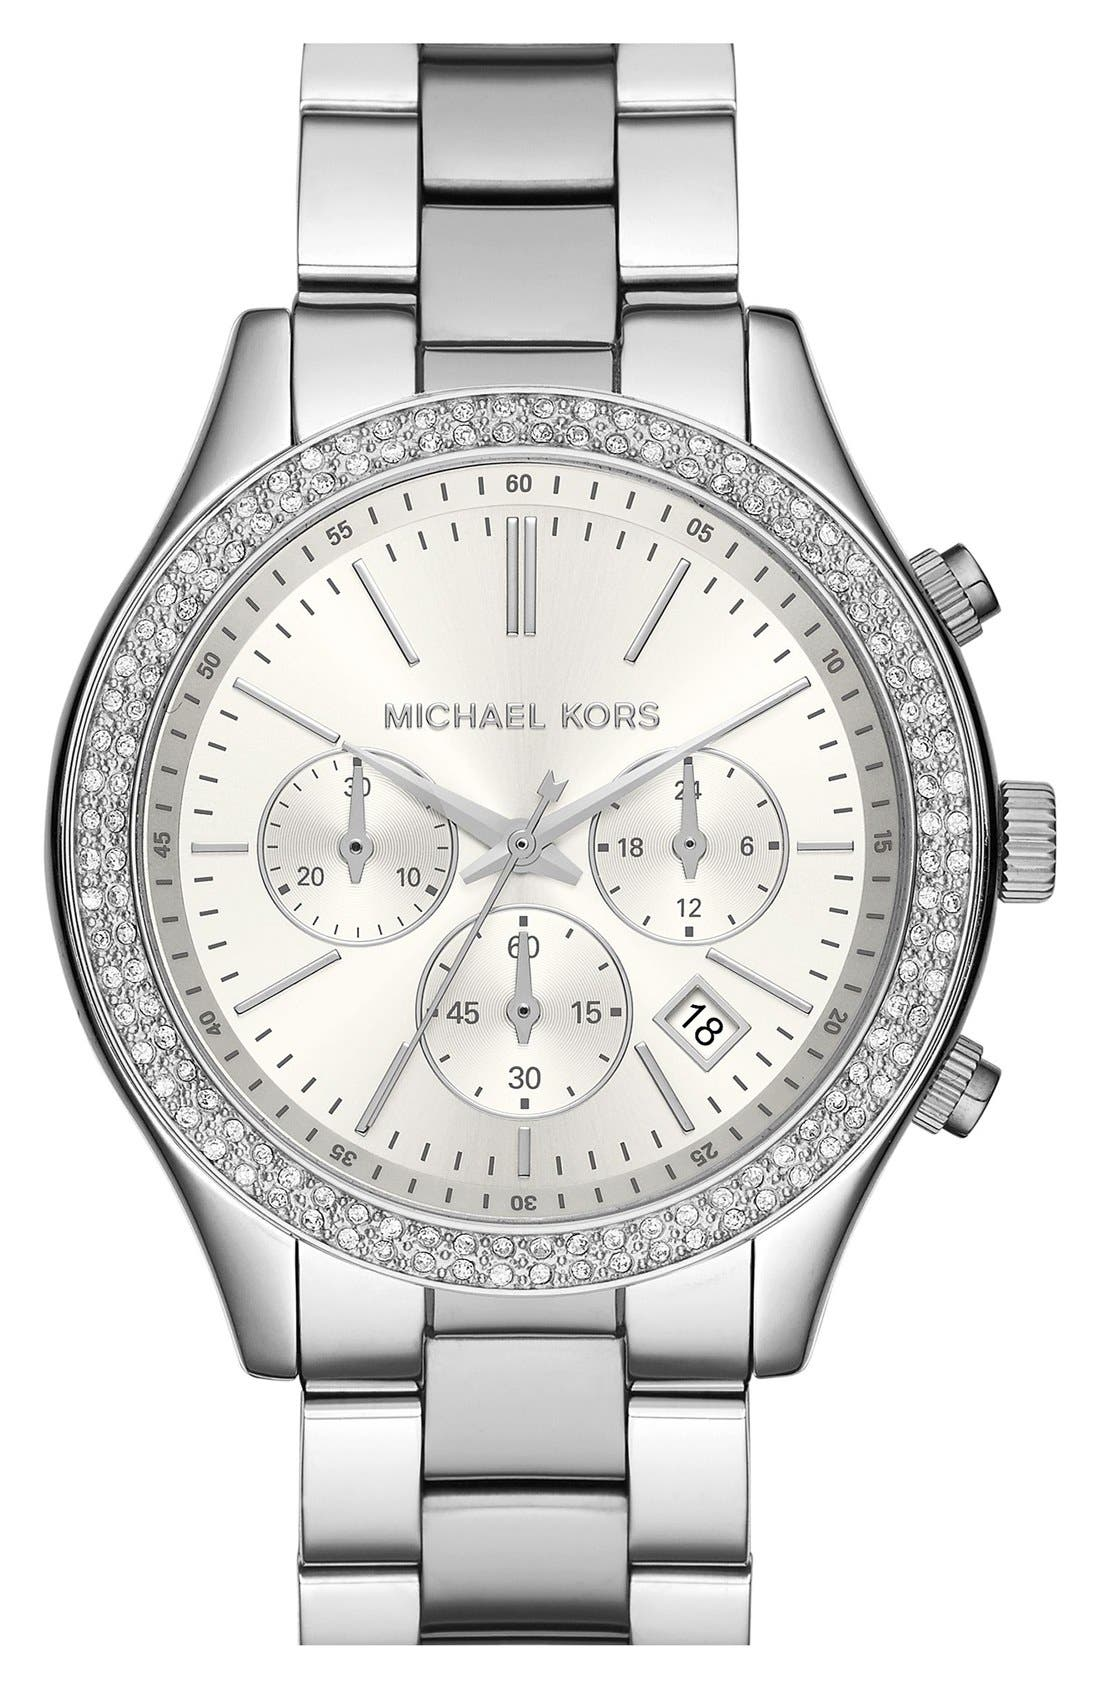 Main Image - Michael Kors 'Slim Runway' Crystal Bezel Chronograph Bracelet Watch, 42mm (Nordstrom Exclusive)